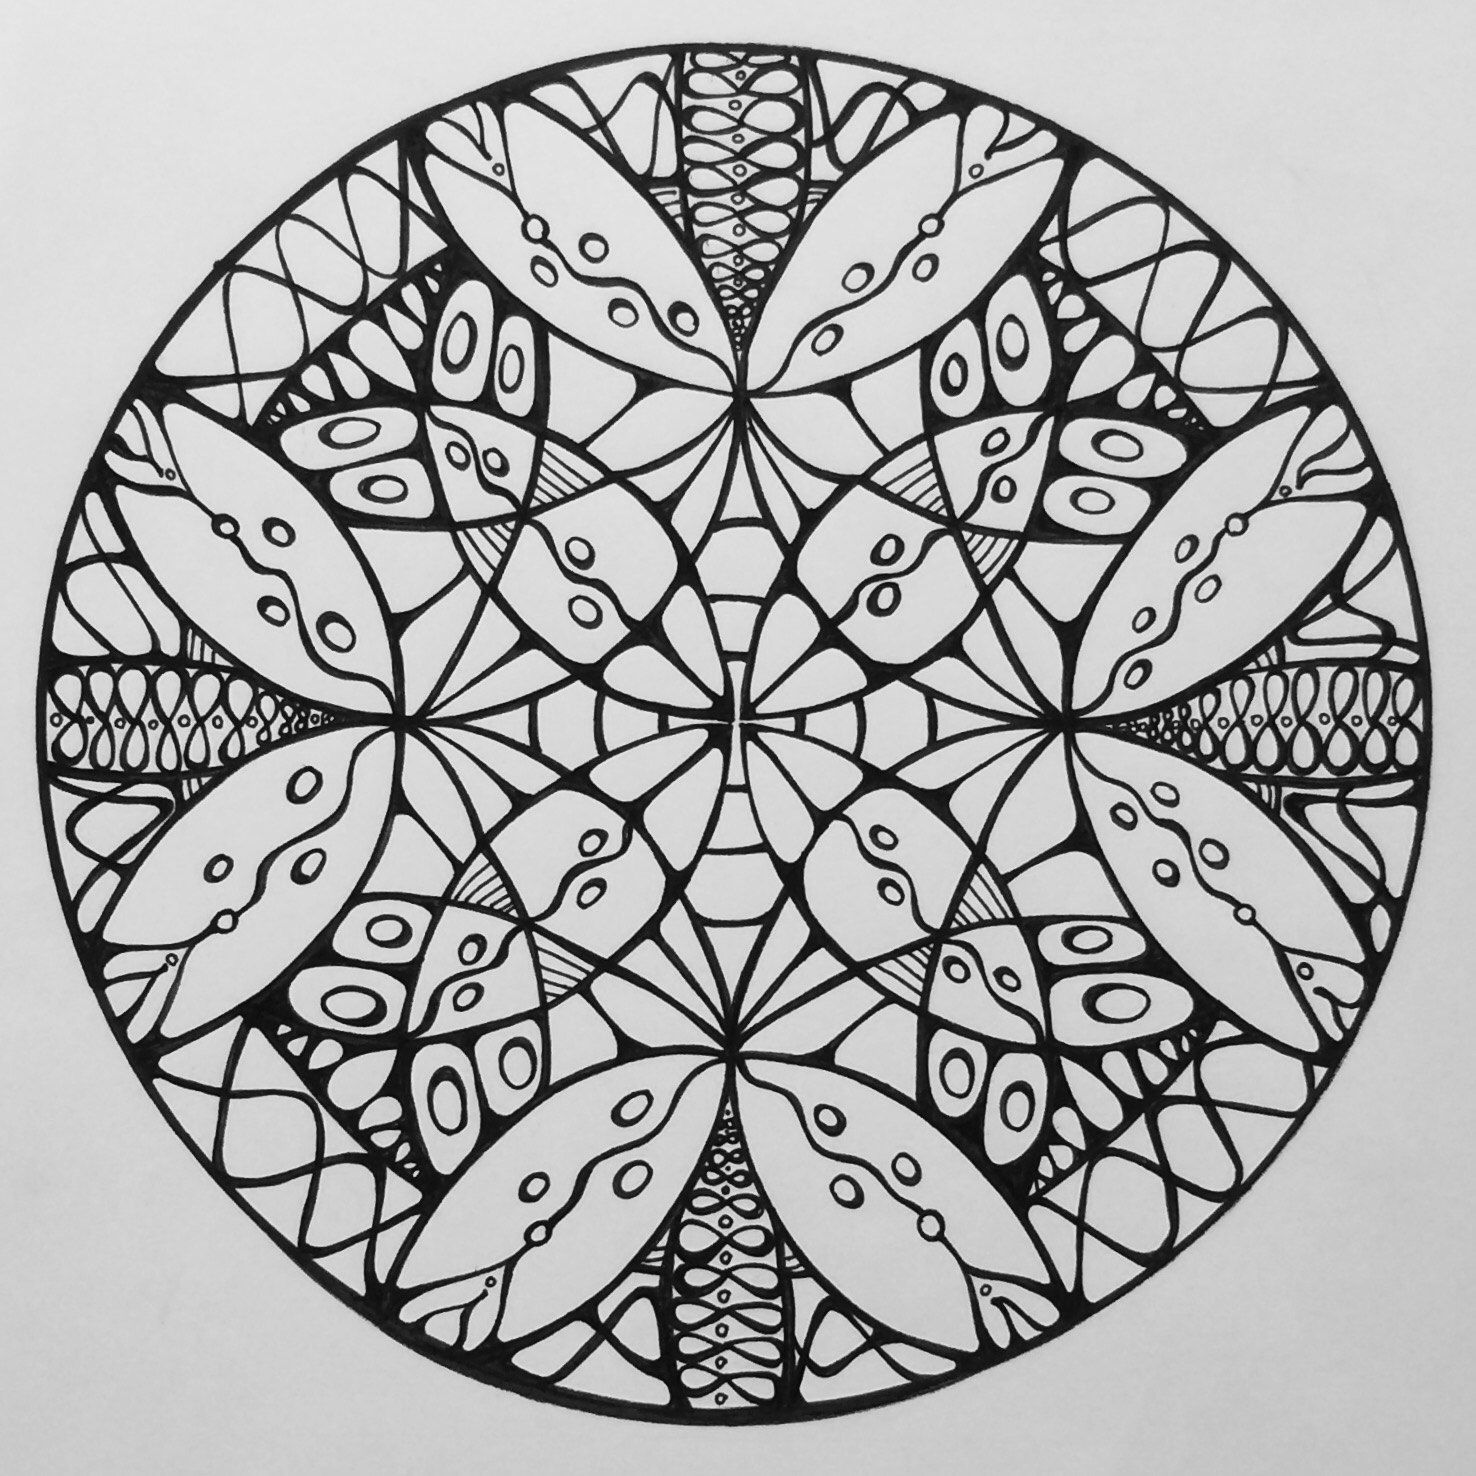 Samdala 009 Mandala Design To Color Inspired By Sacred Geometry